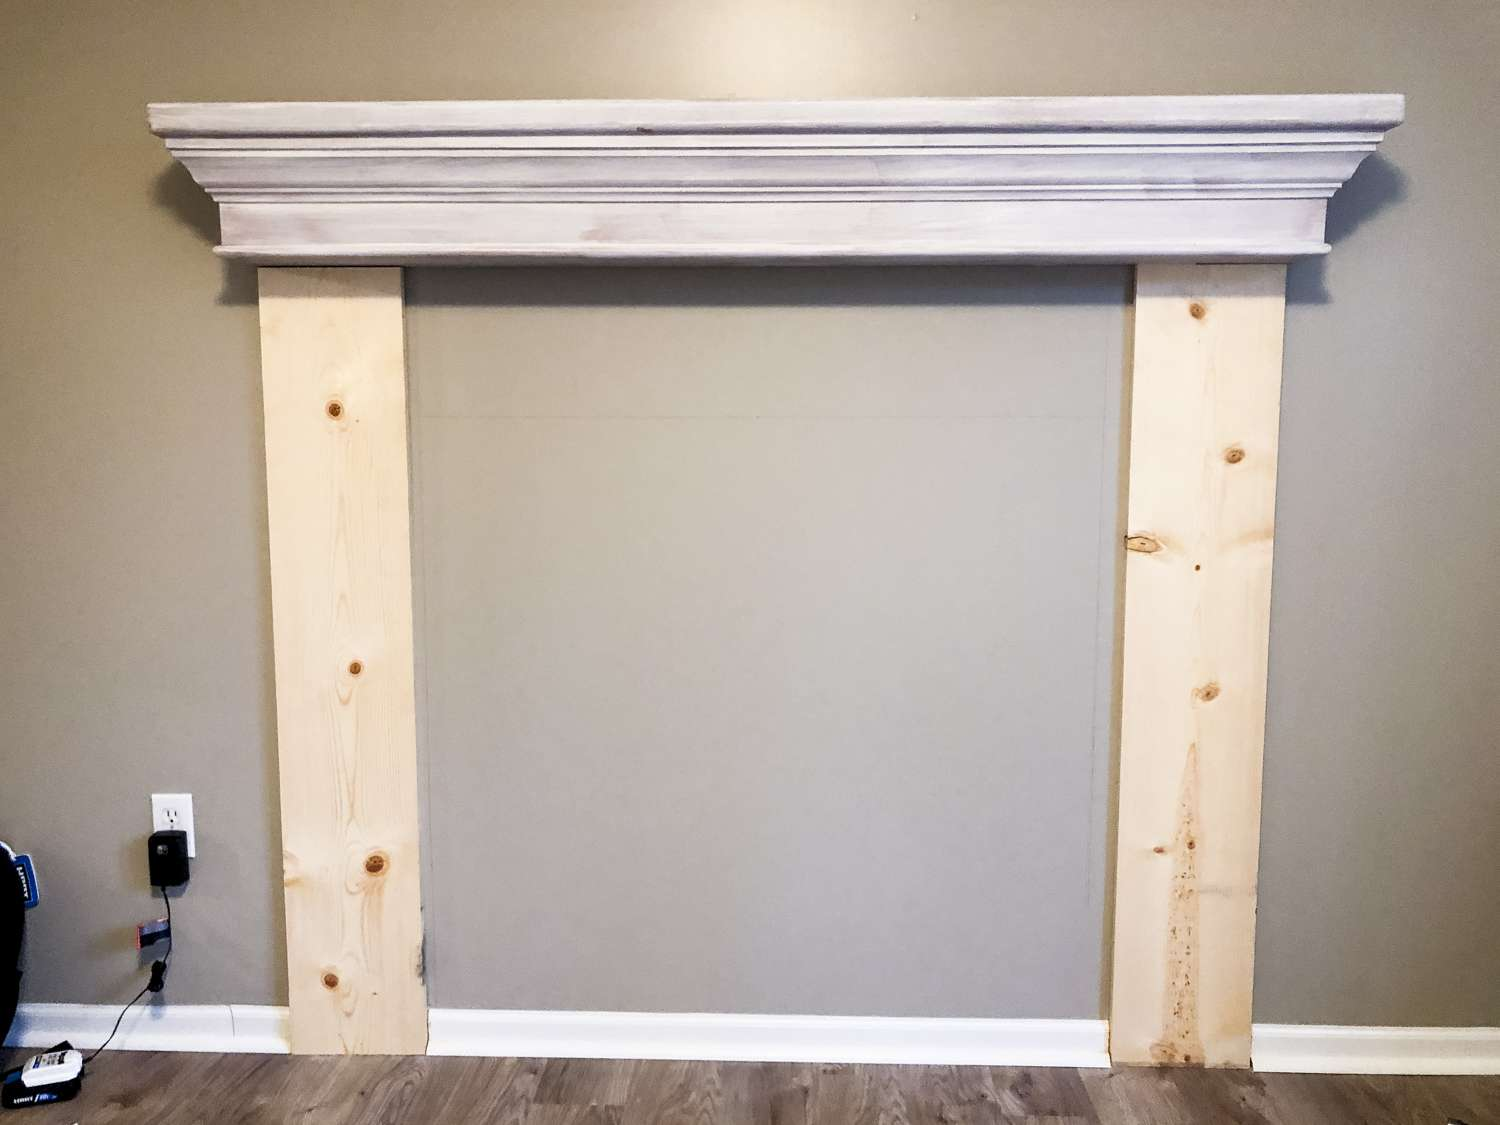 How to build a faux fireplace.